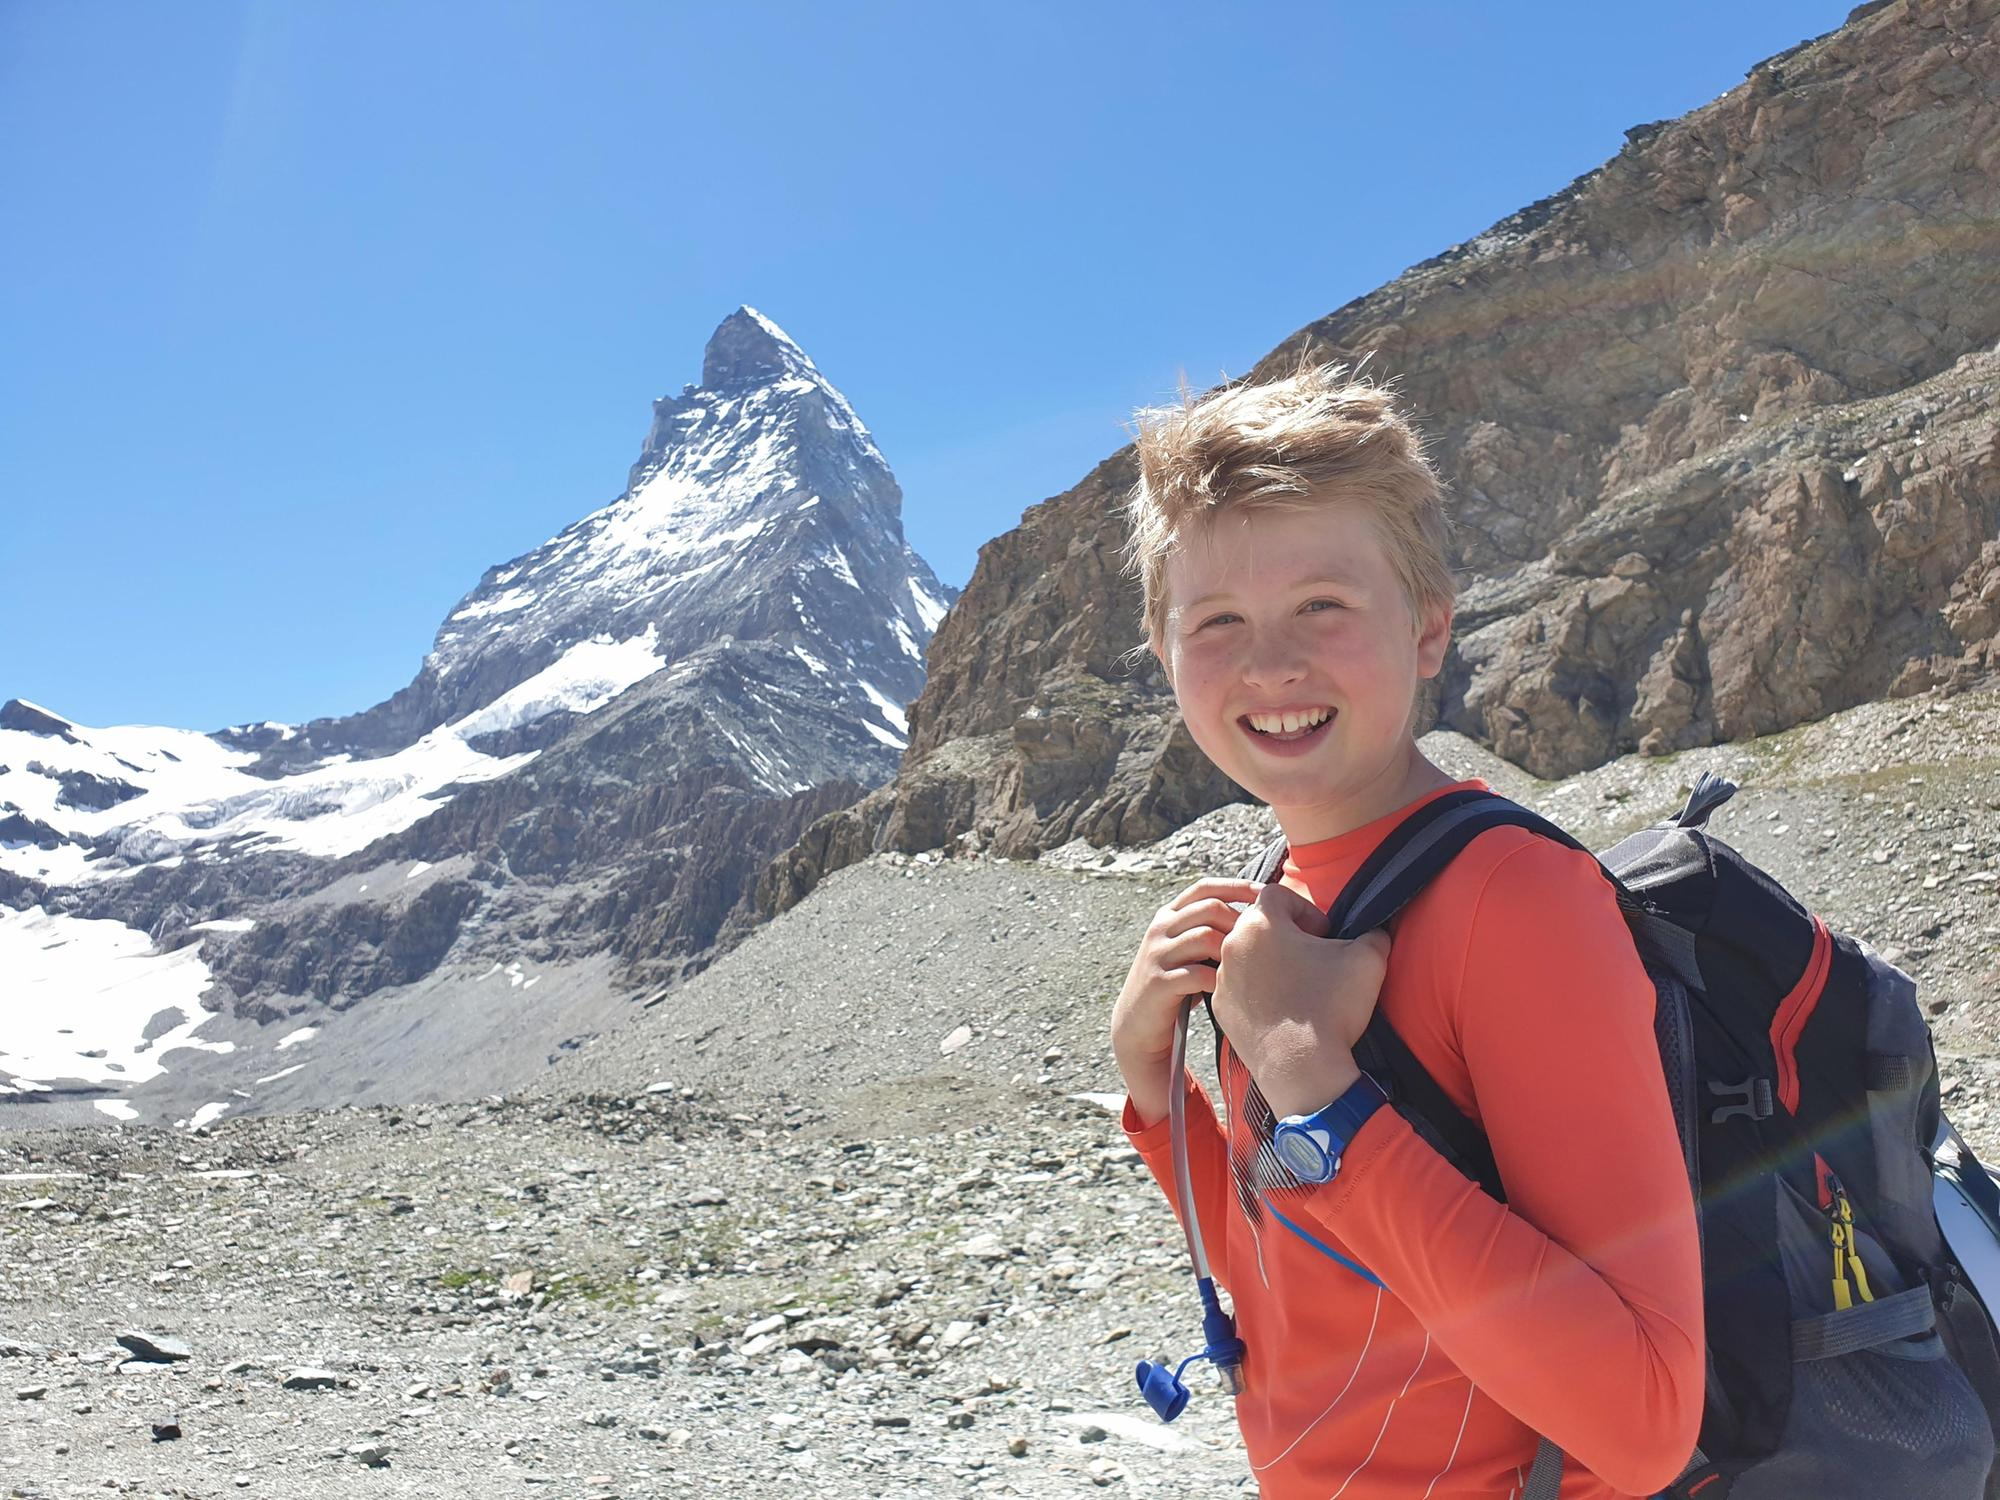 Edinburgh boy, 11, becomes youngest person to climb Matterhorn